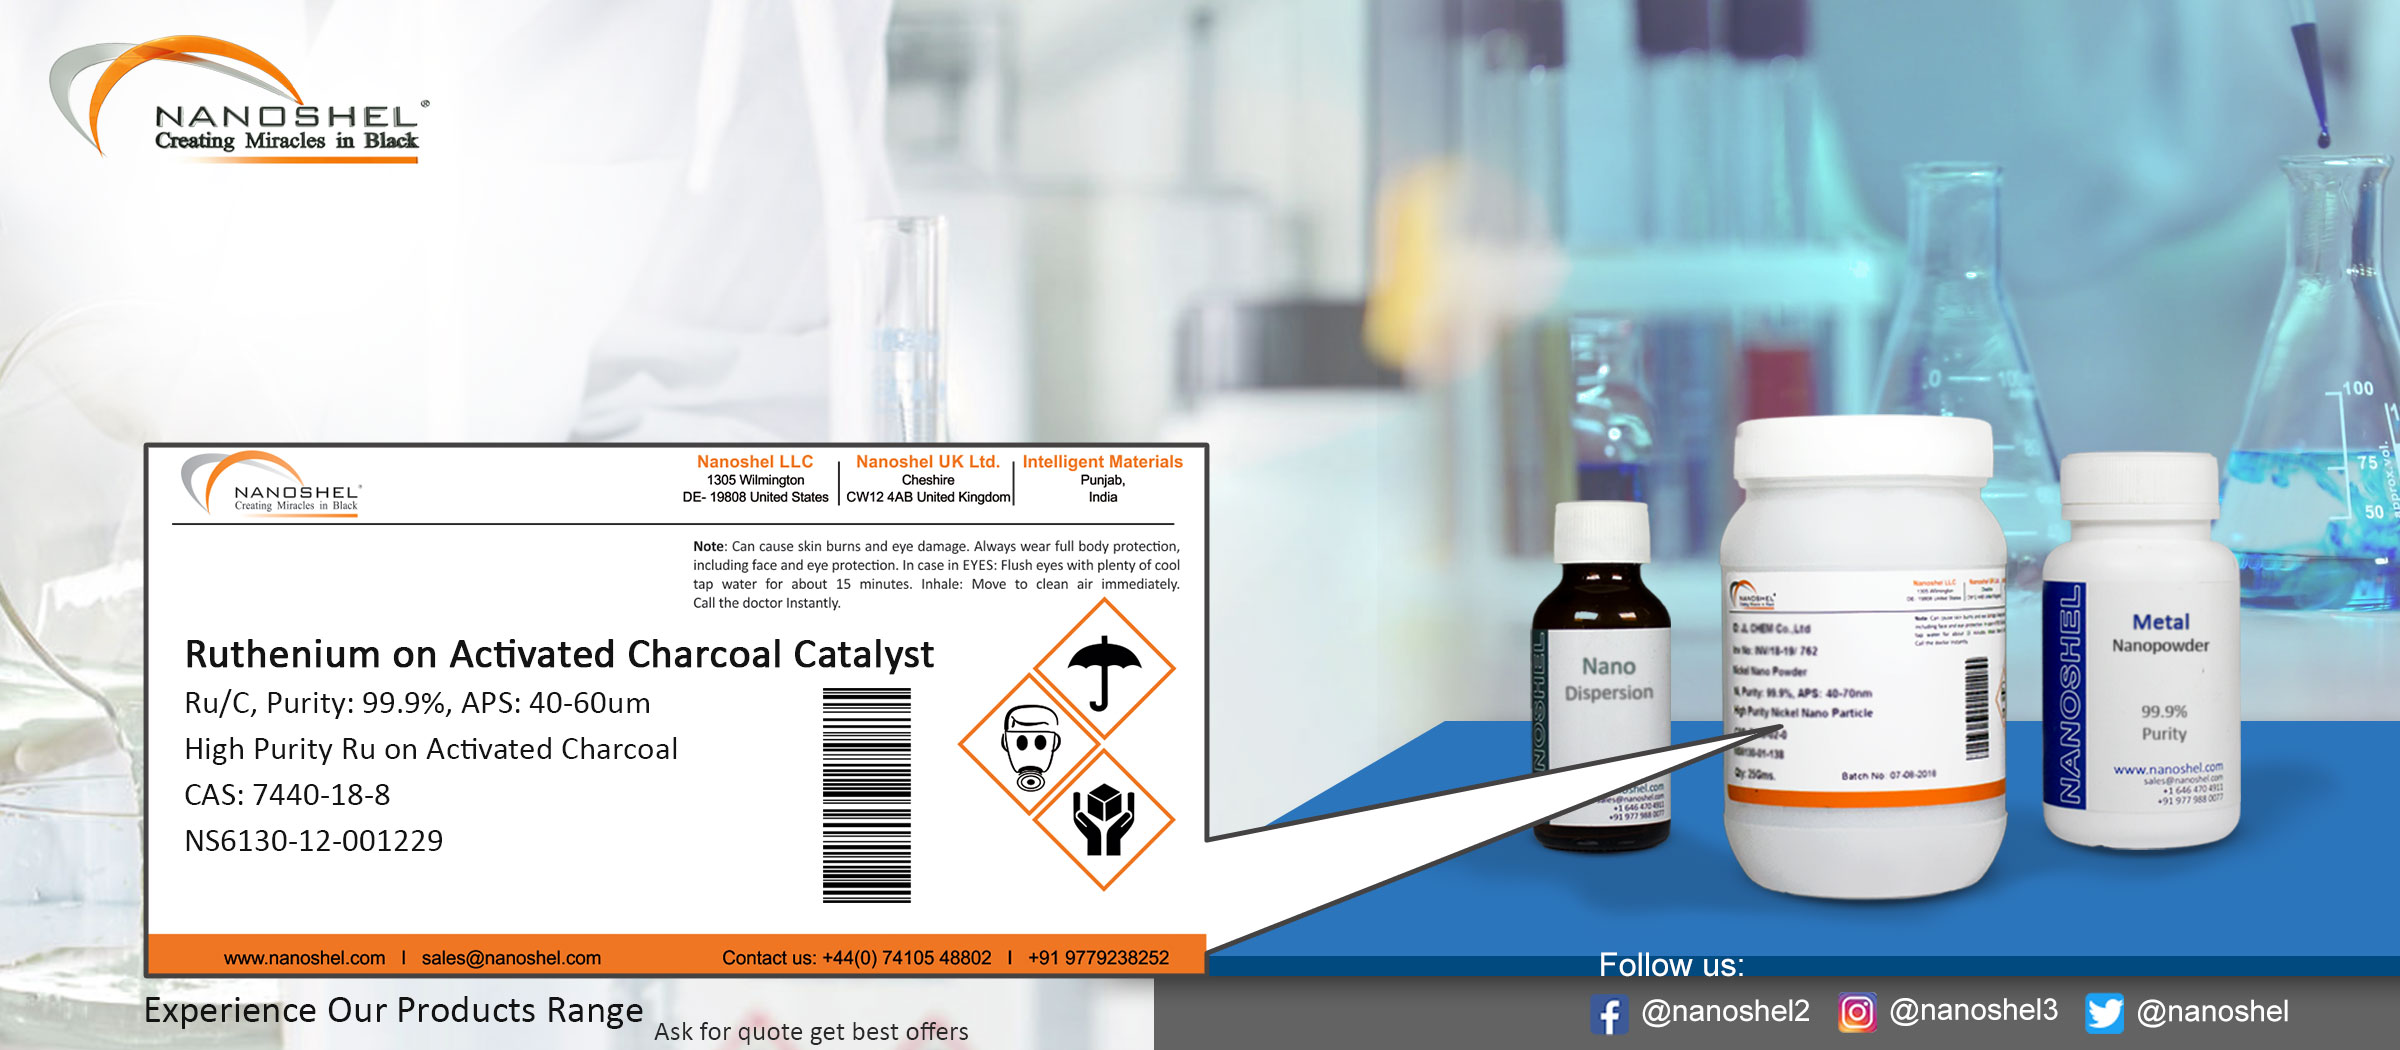 Ruthenium on Activated Charcoal Catalyst